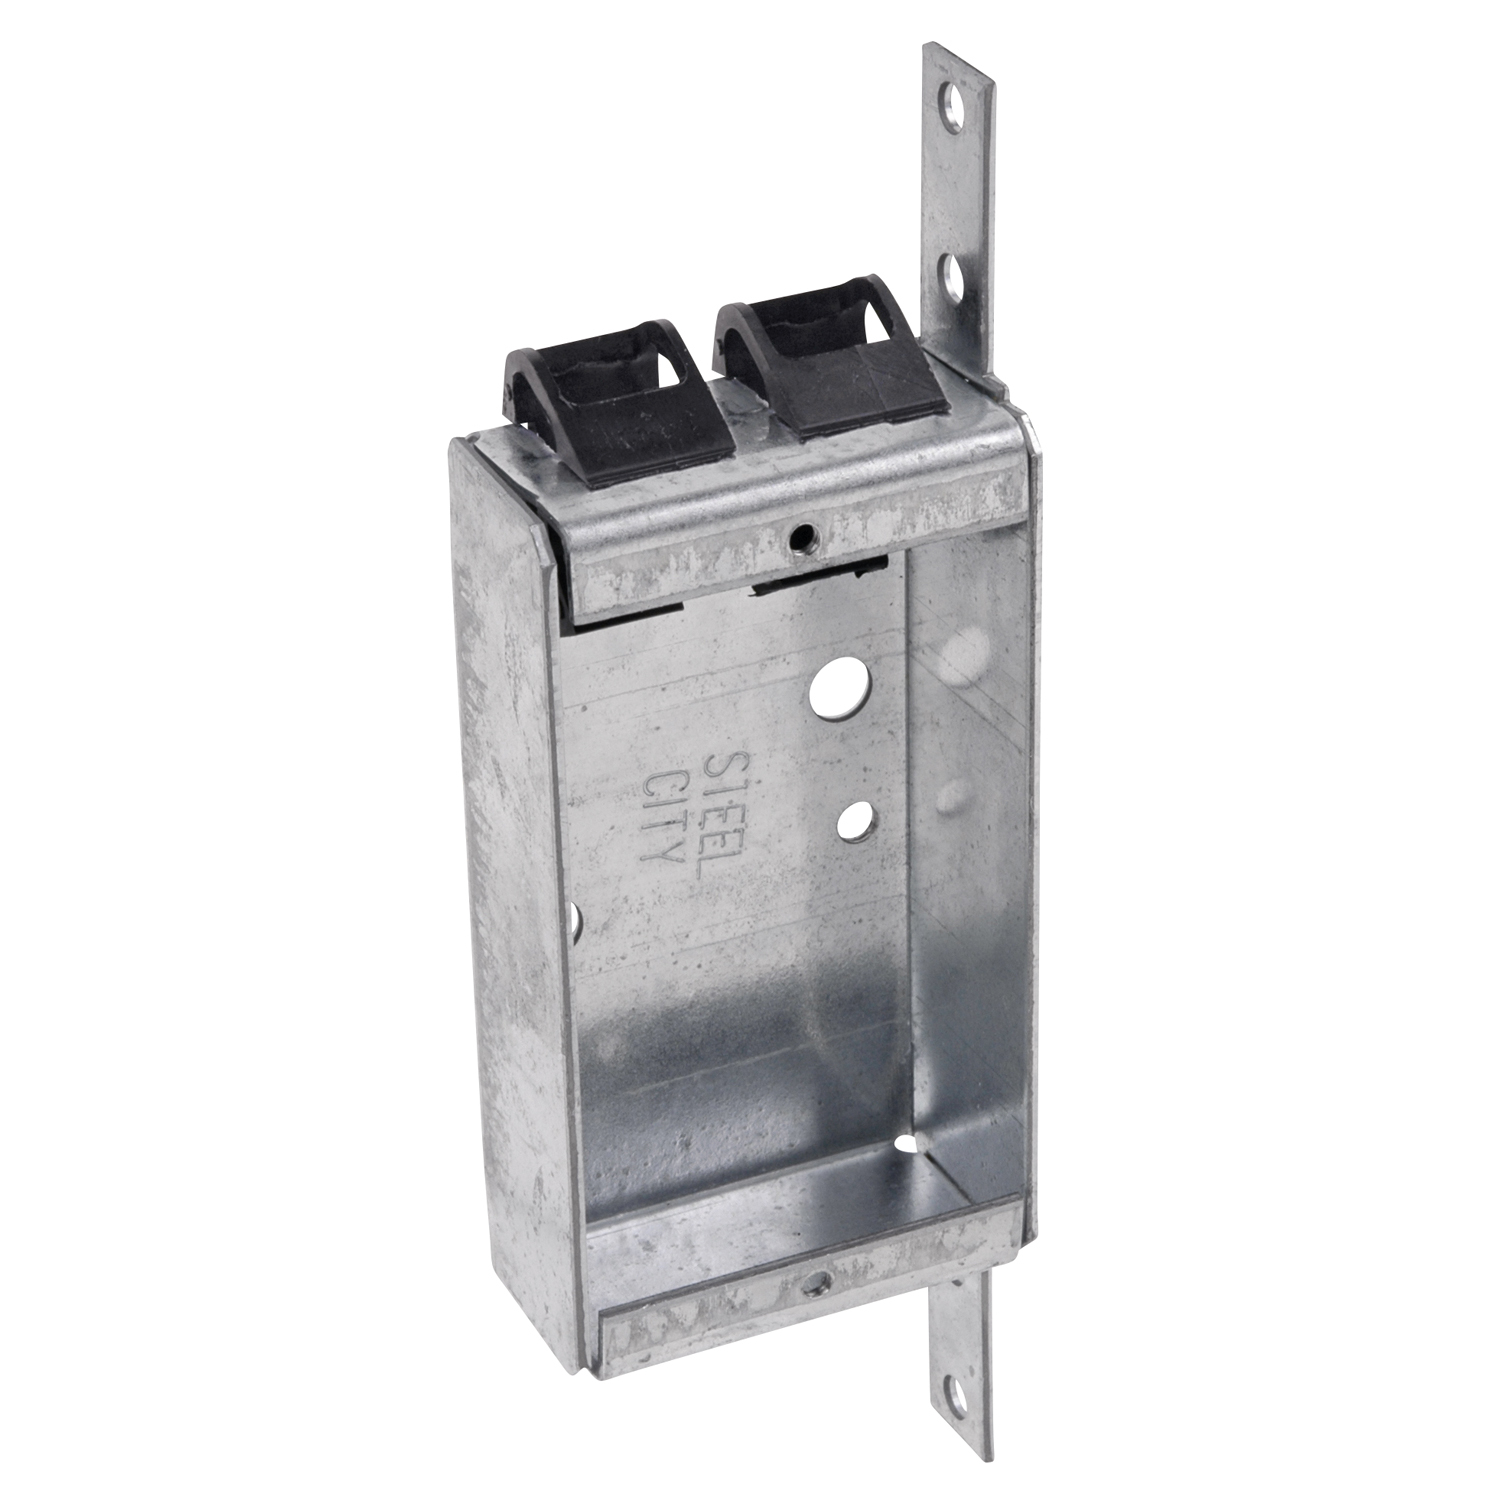 Steel City® Switch Box, Non-Gangable, 1 Outlet, 2 Knockouts, Knockout/Pryout Cable Entry, Panel Mounting, 6.5 cu-in Capacity, Steel, Electro-Galvanized, Silver, 3-3/4 in H x 2 in W x 1 in D Dimensions